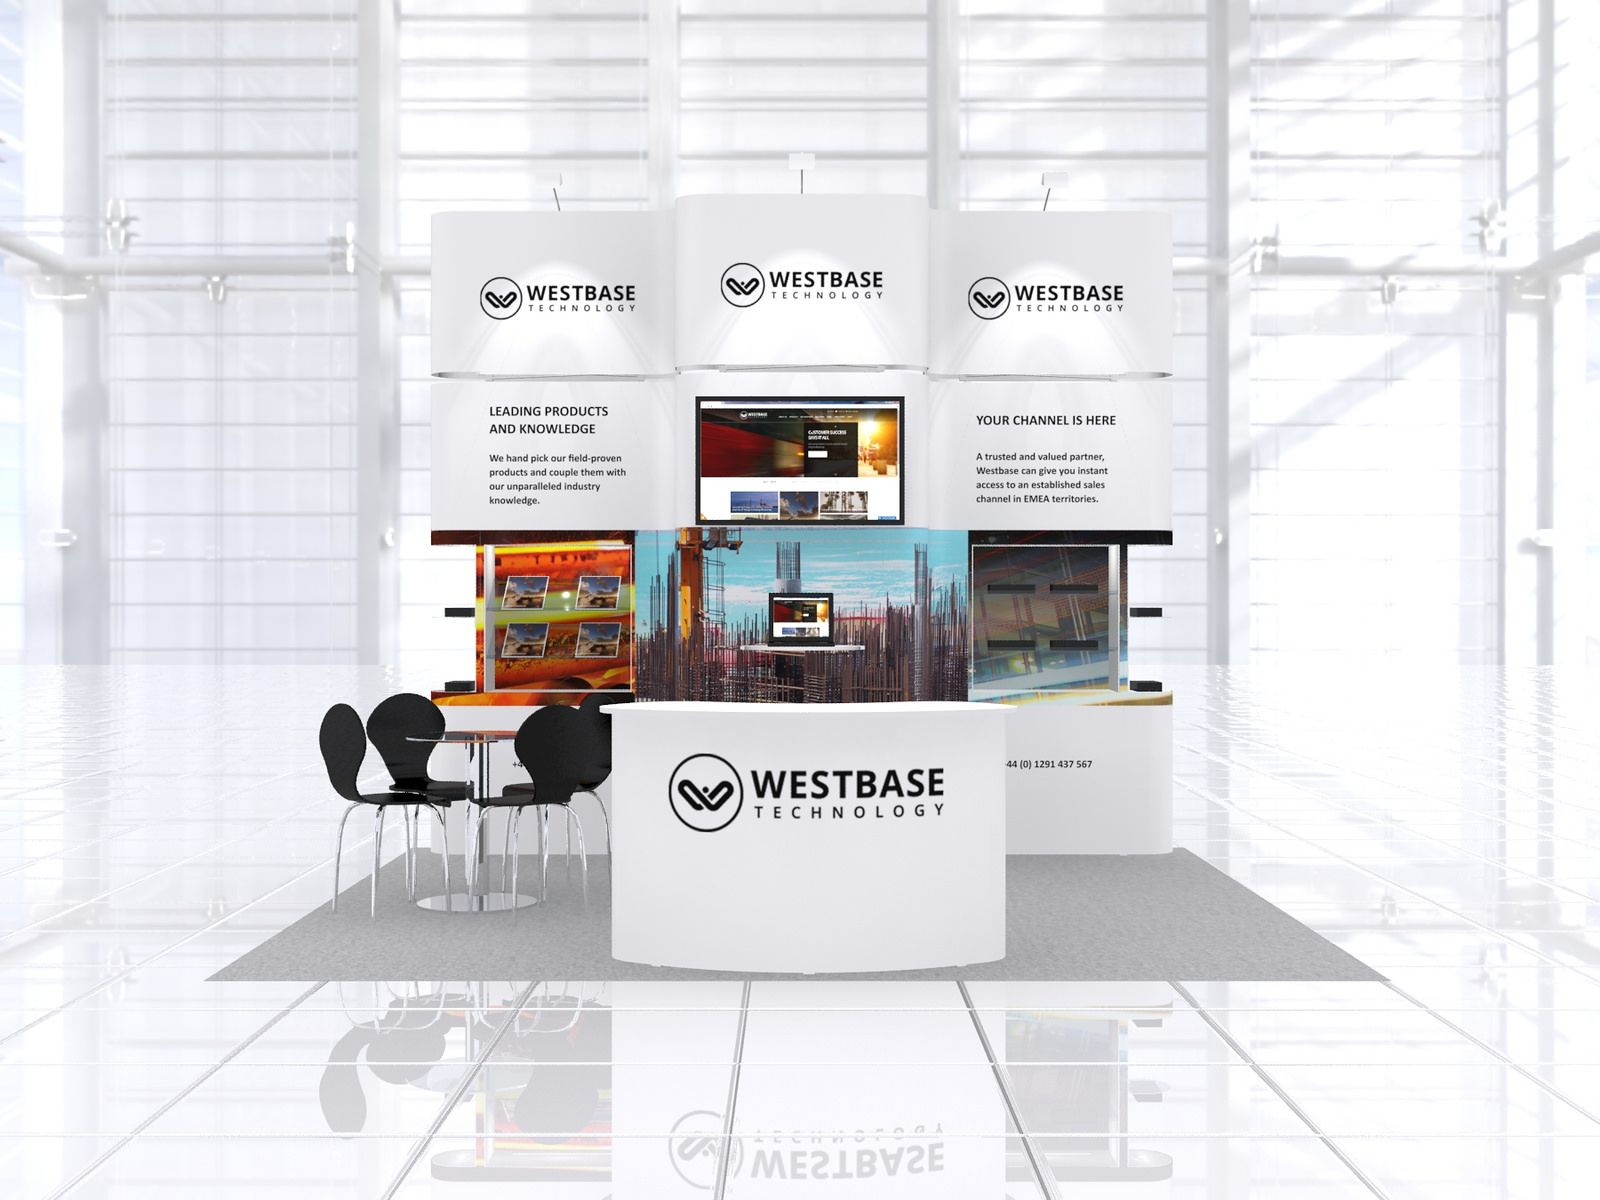 Exhibition stand design | Exhibition stand design, Stand design and ...